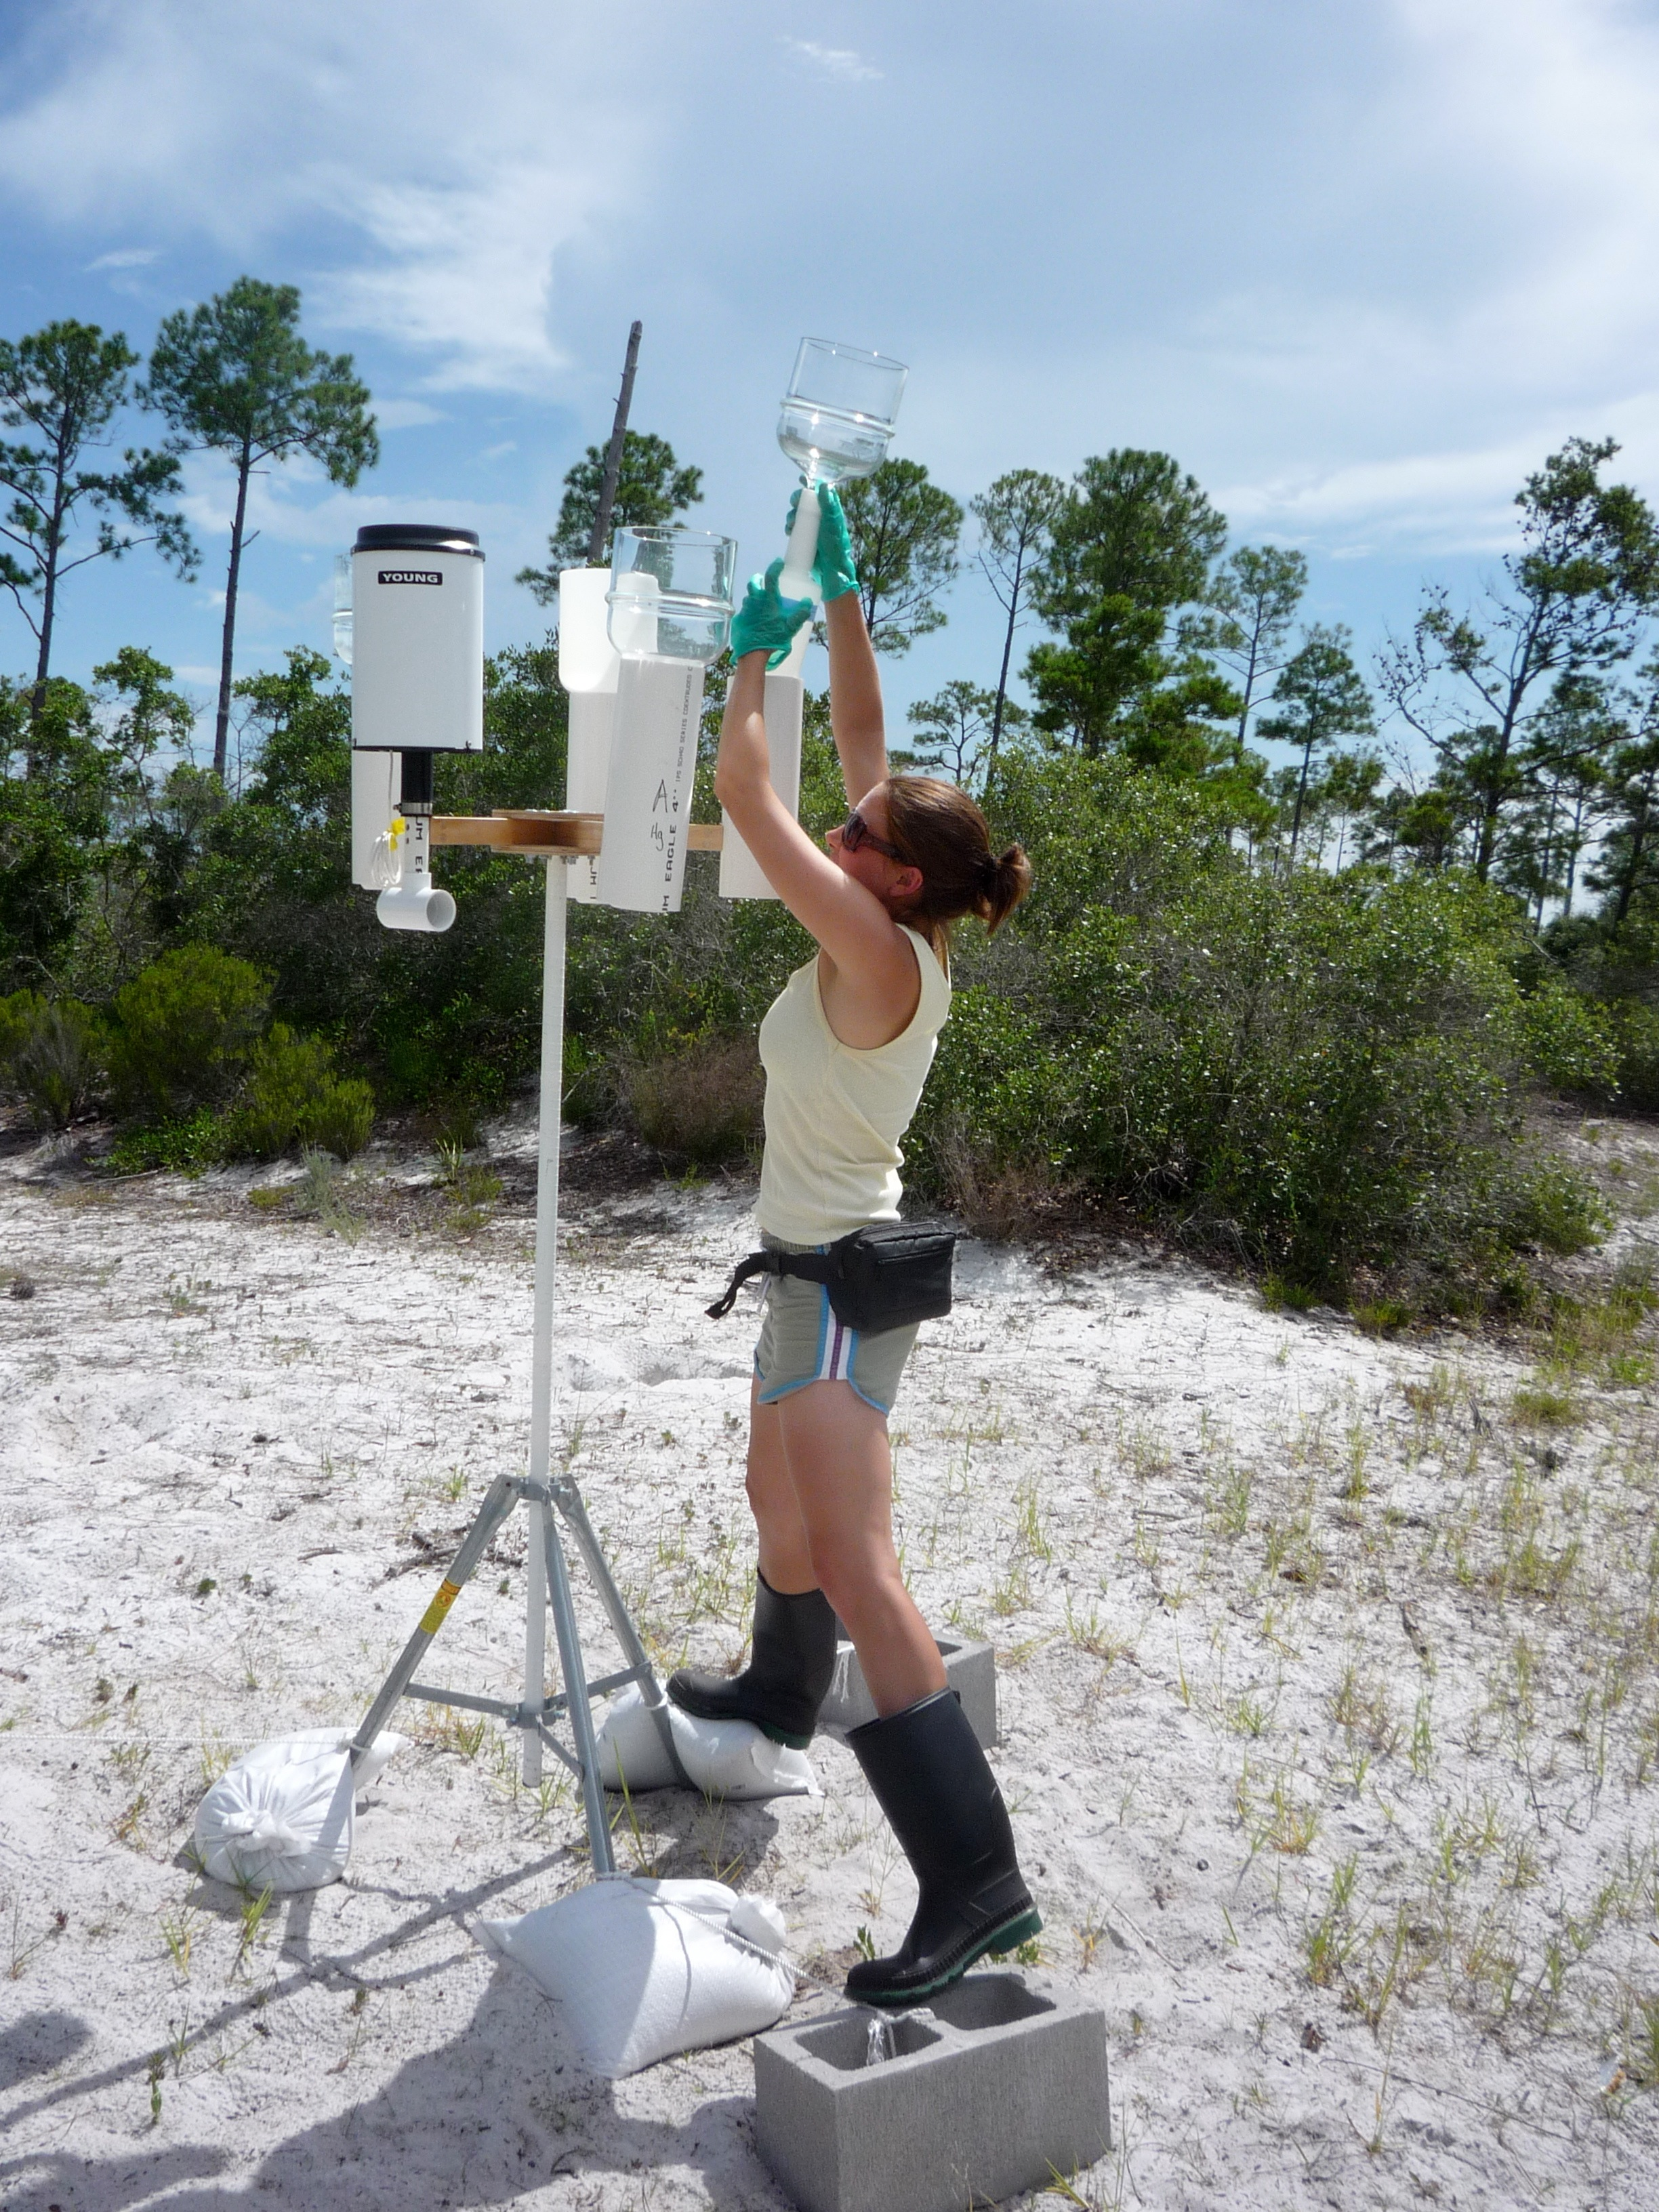 Laura Sherman collecting a precipitation sample at a study site in Florida.  Sampling tripod includes funnels to collect precipitation and a tipping bucket rain gauge. Photo courtesy of James Barres